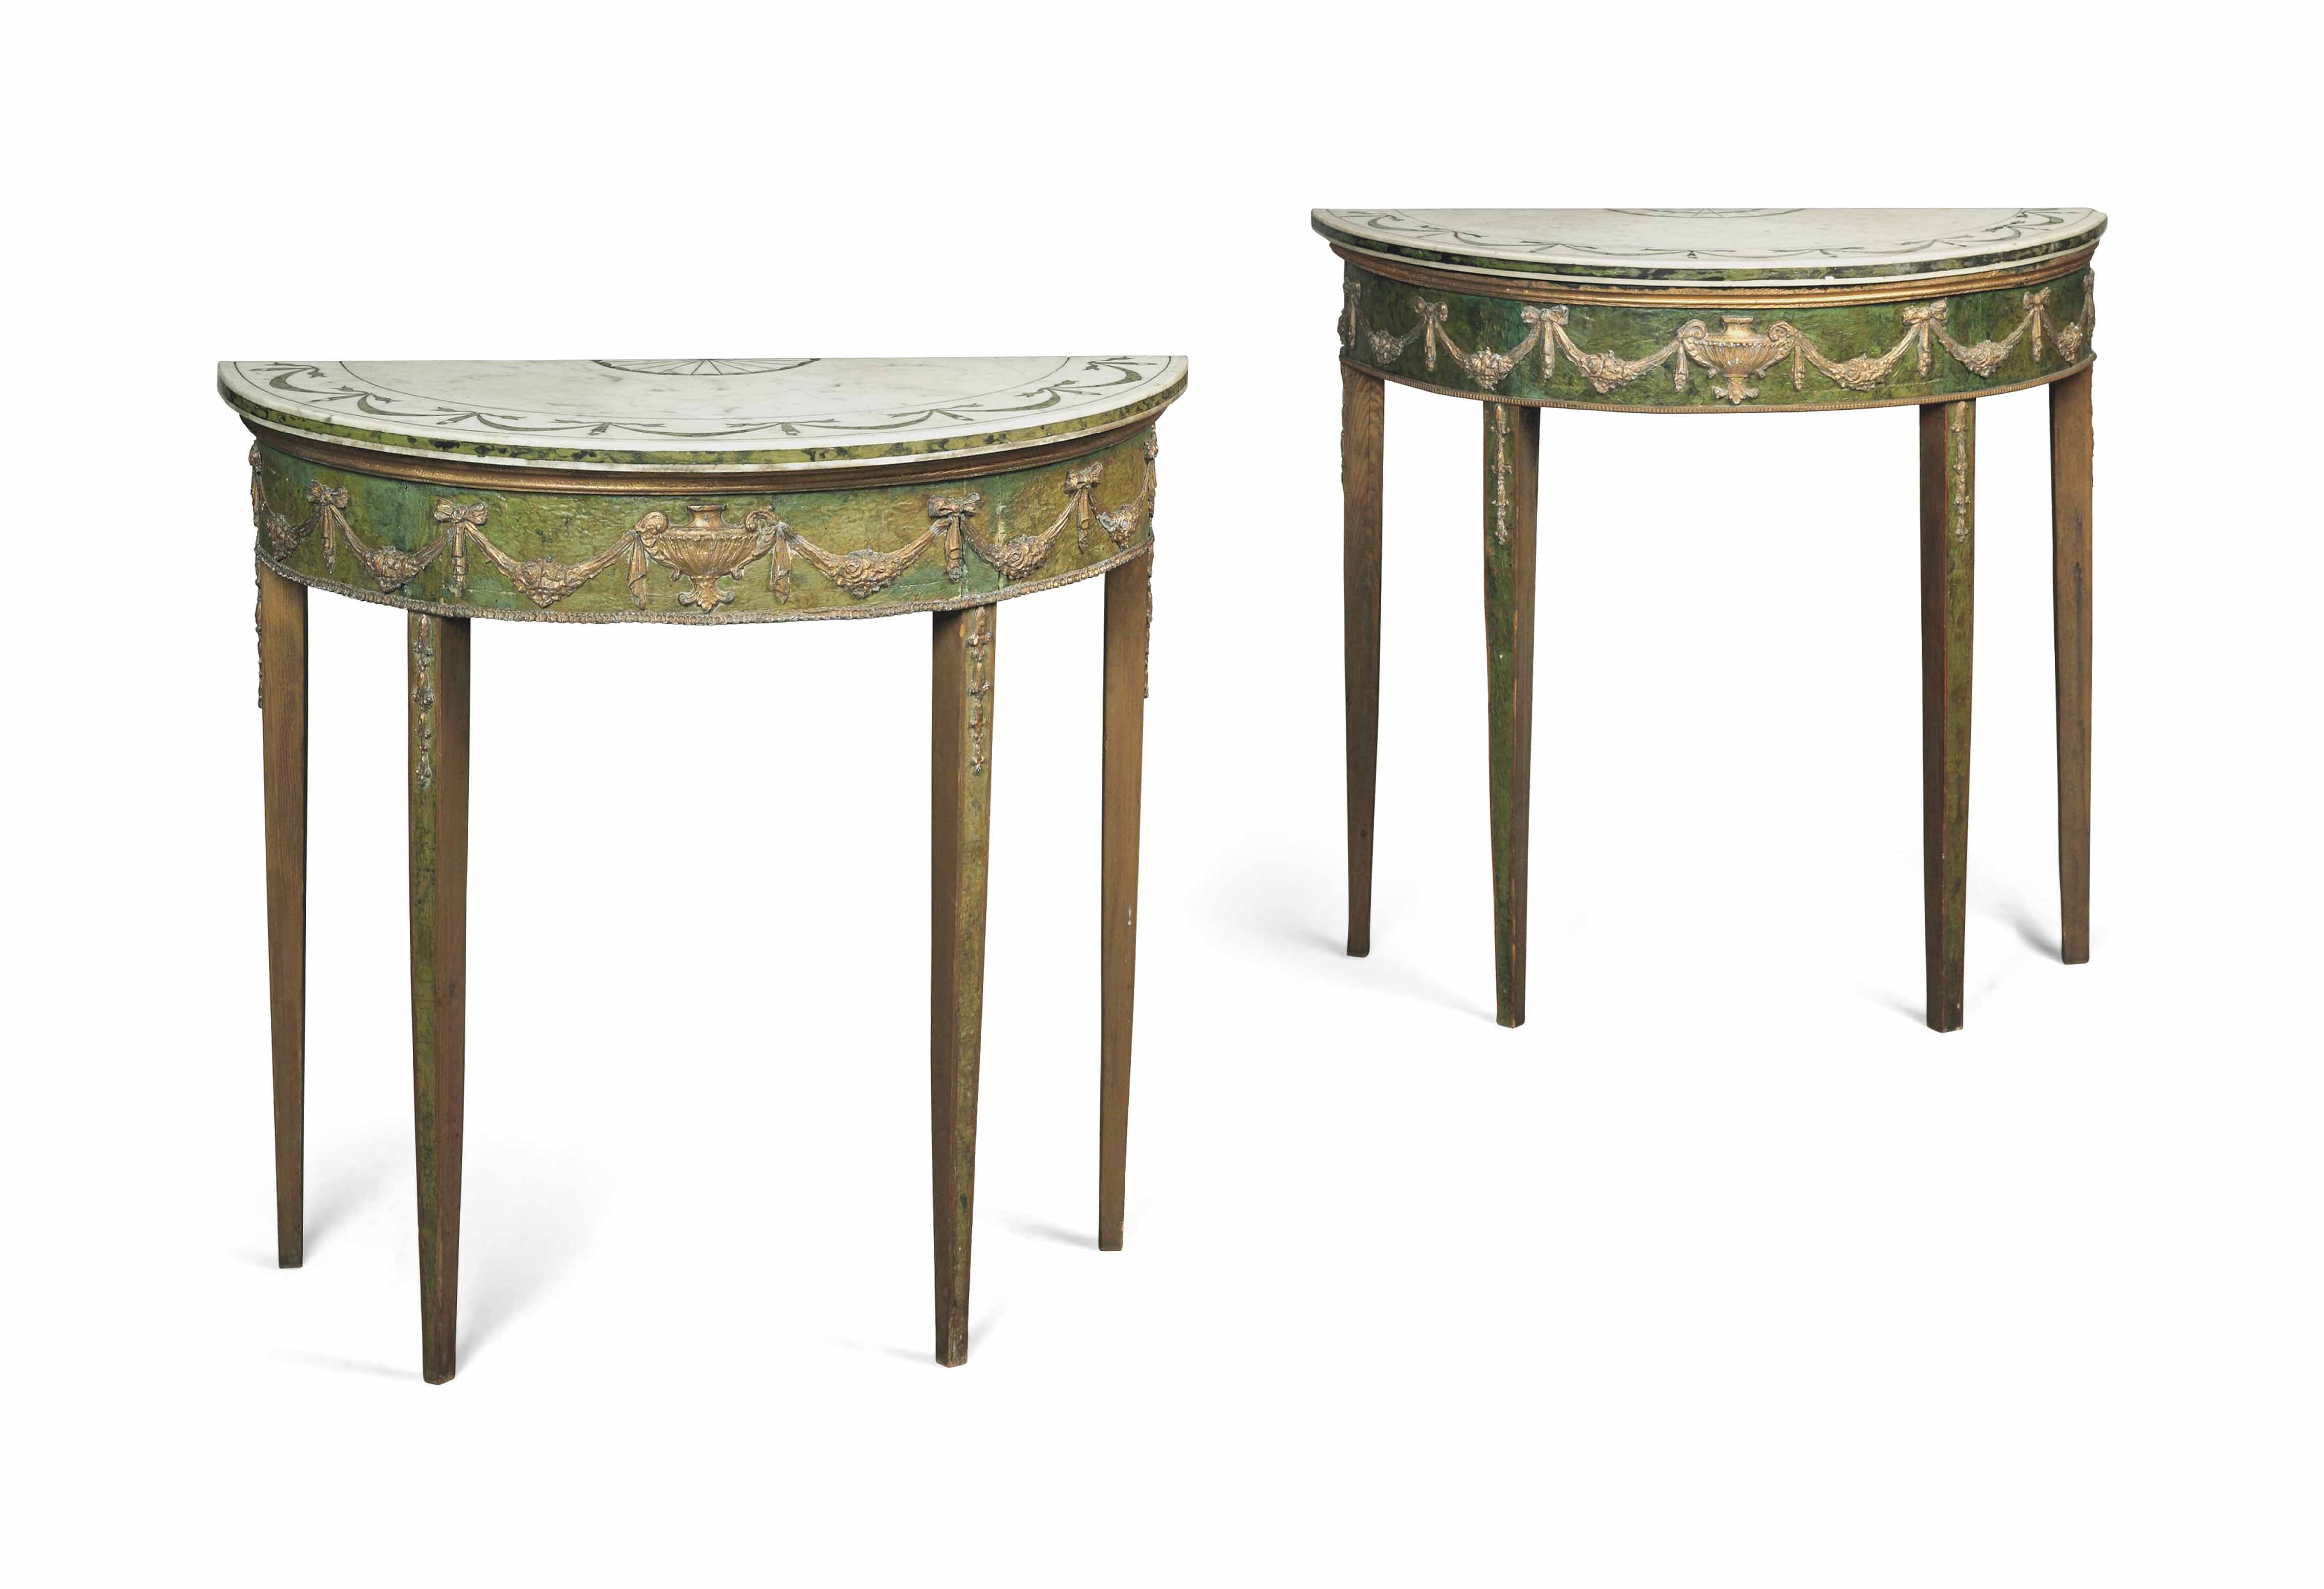 A PAIR OF GILT-METAL MOUNTED POLYCHROME-PAINTED DEMI-LUNE SIDE TABLES